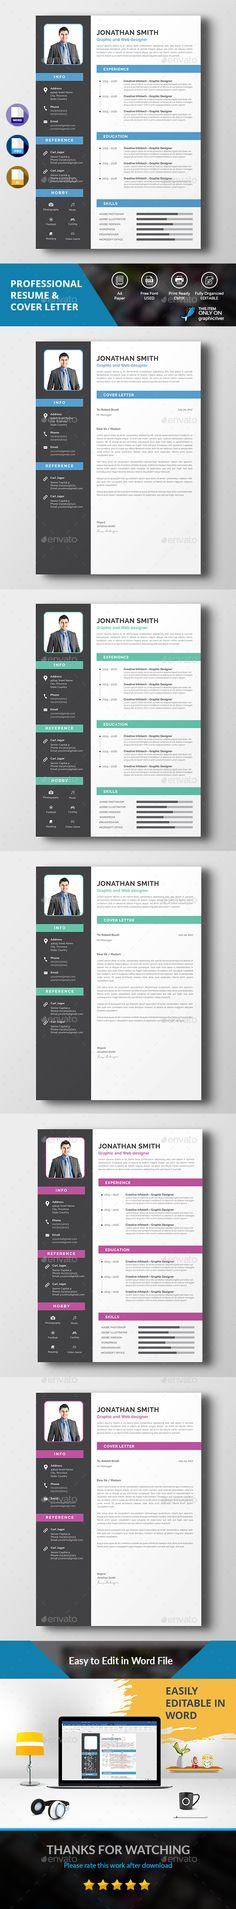 Resume Ai illustrator, Cv template and Modern resume template - how to make resume on word